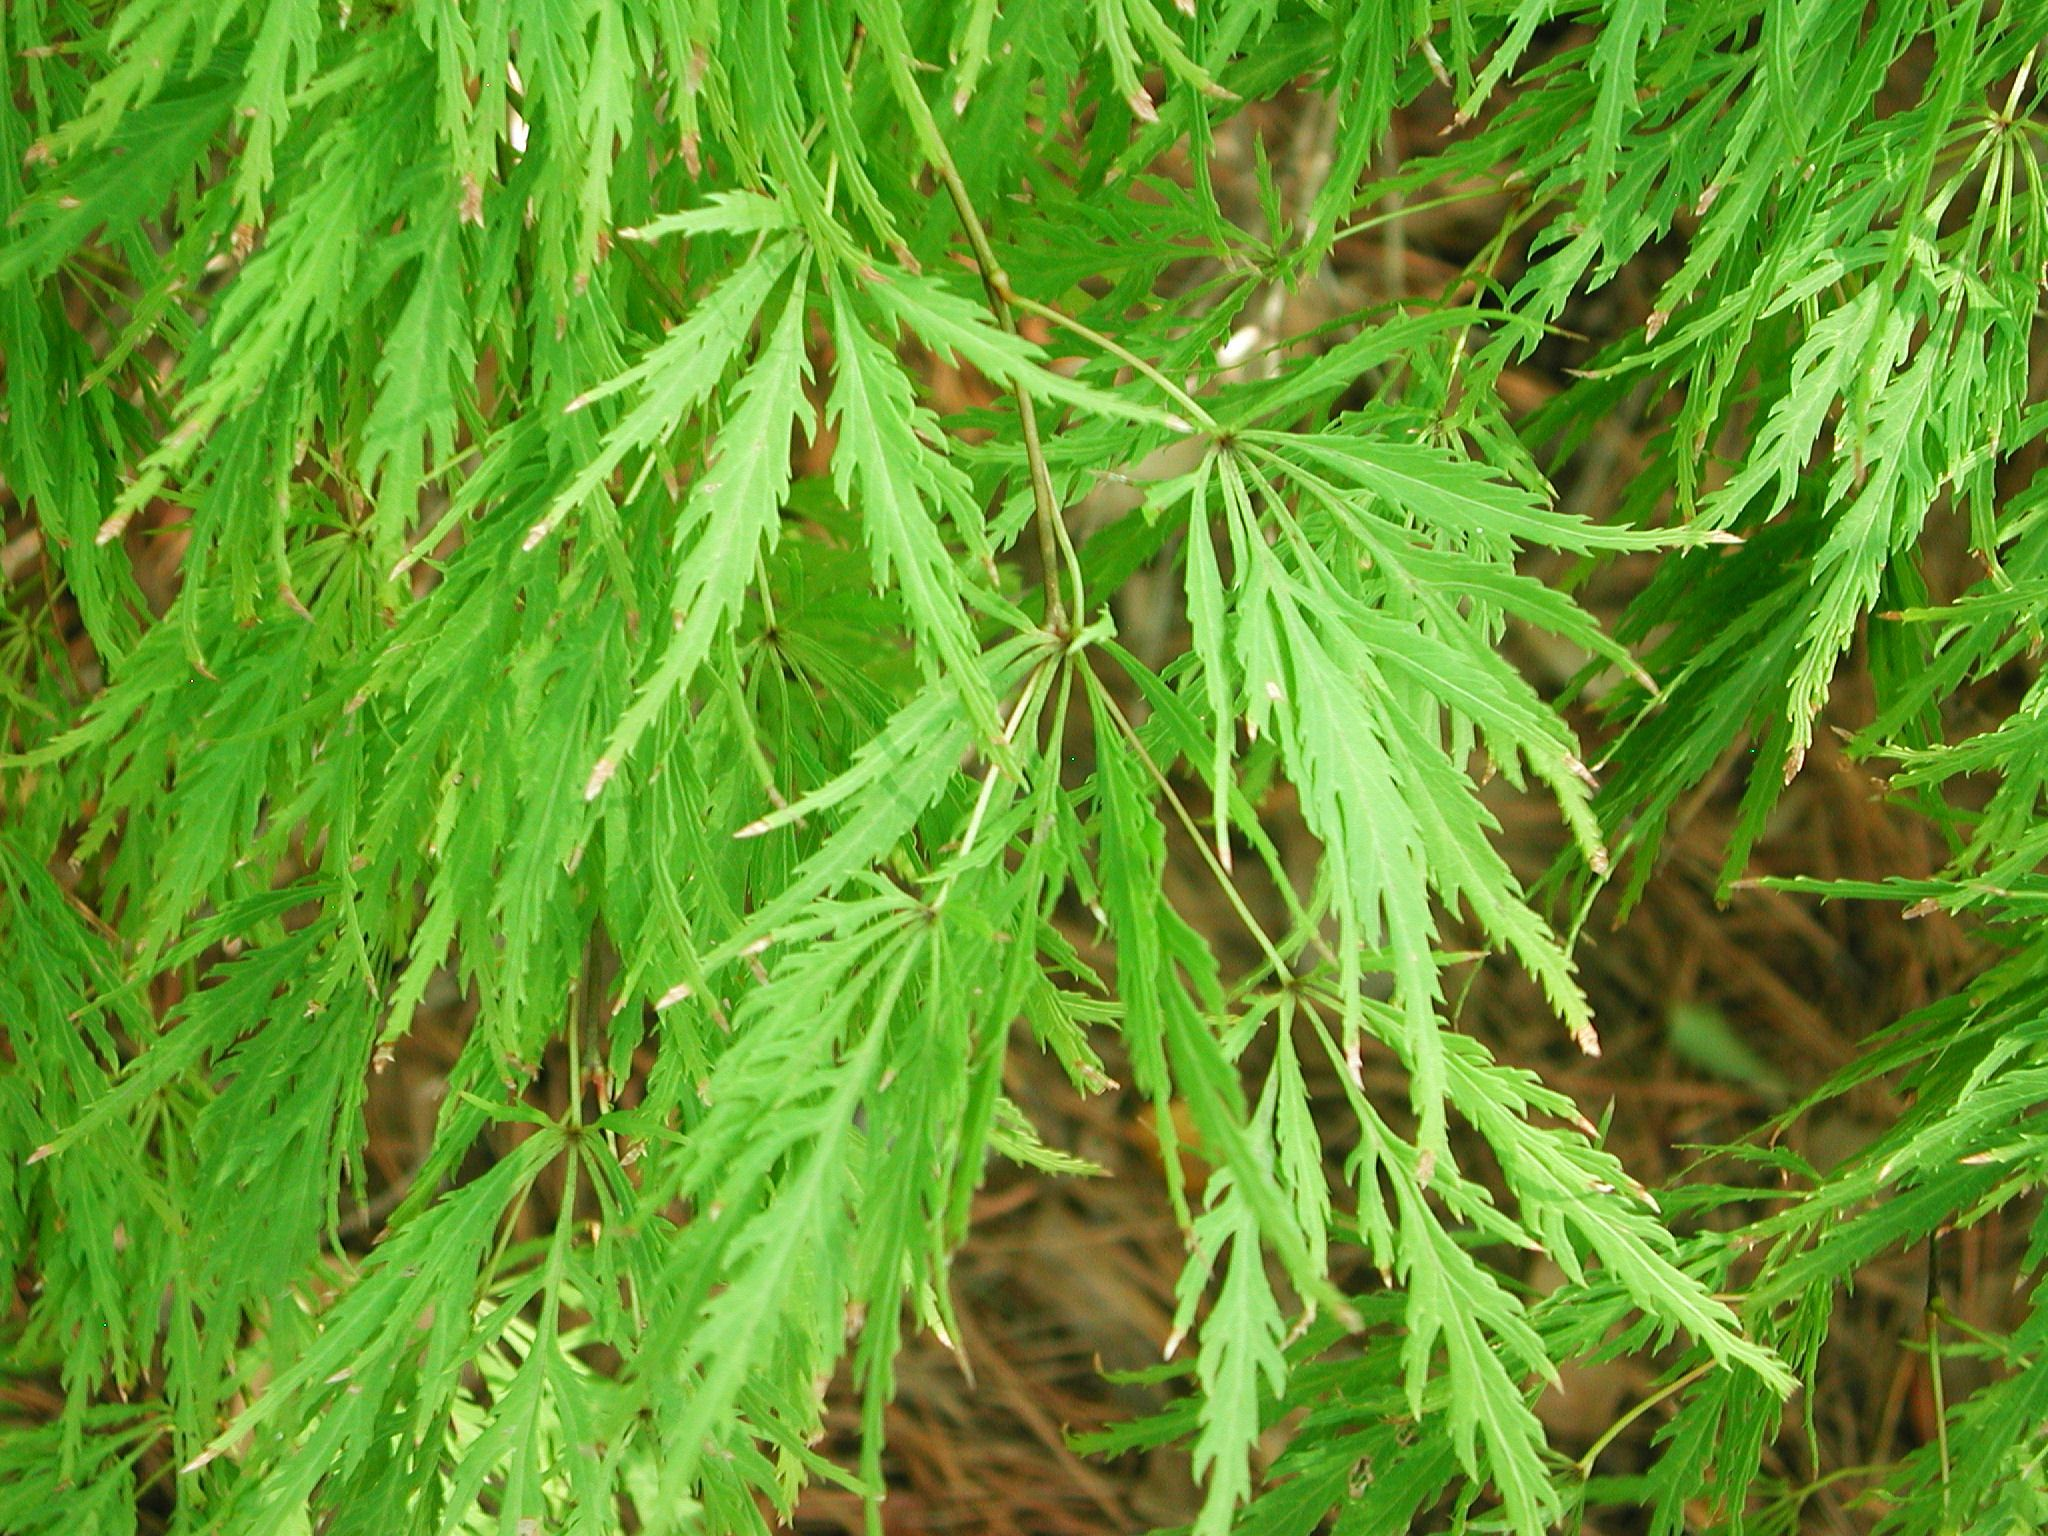 How to care for a fern leaf japanese maple - Lace Leaf Japanese Maple Comes In Green